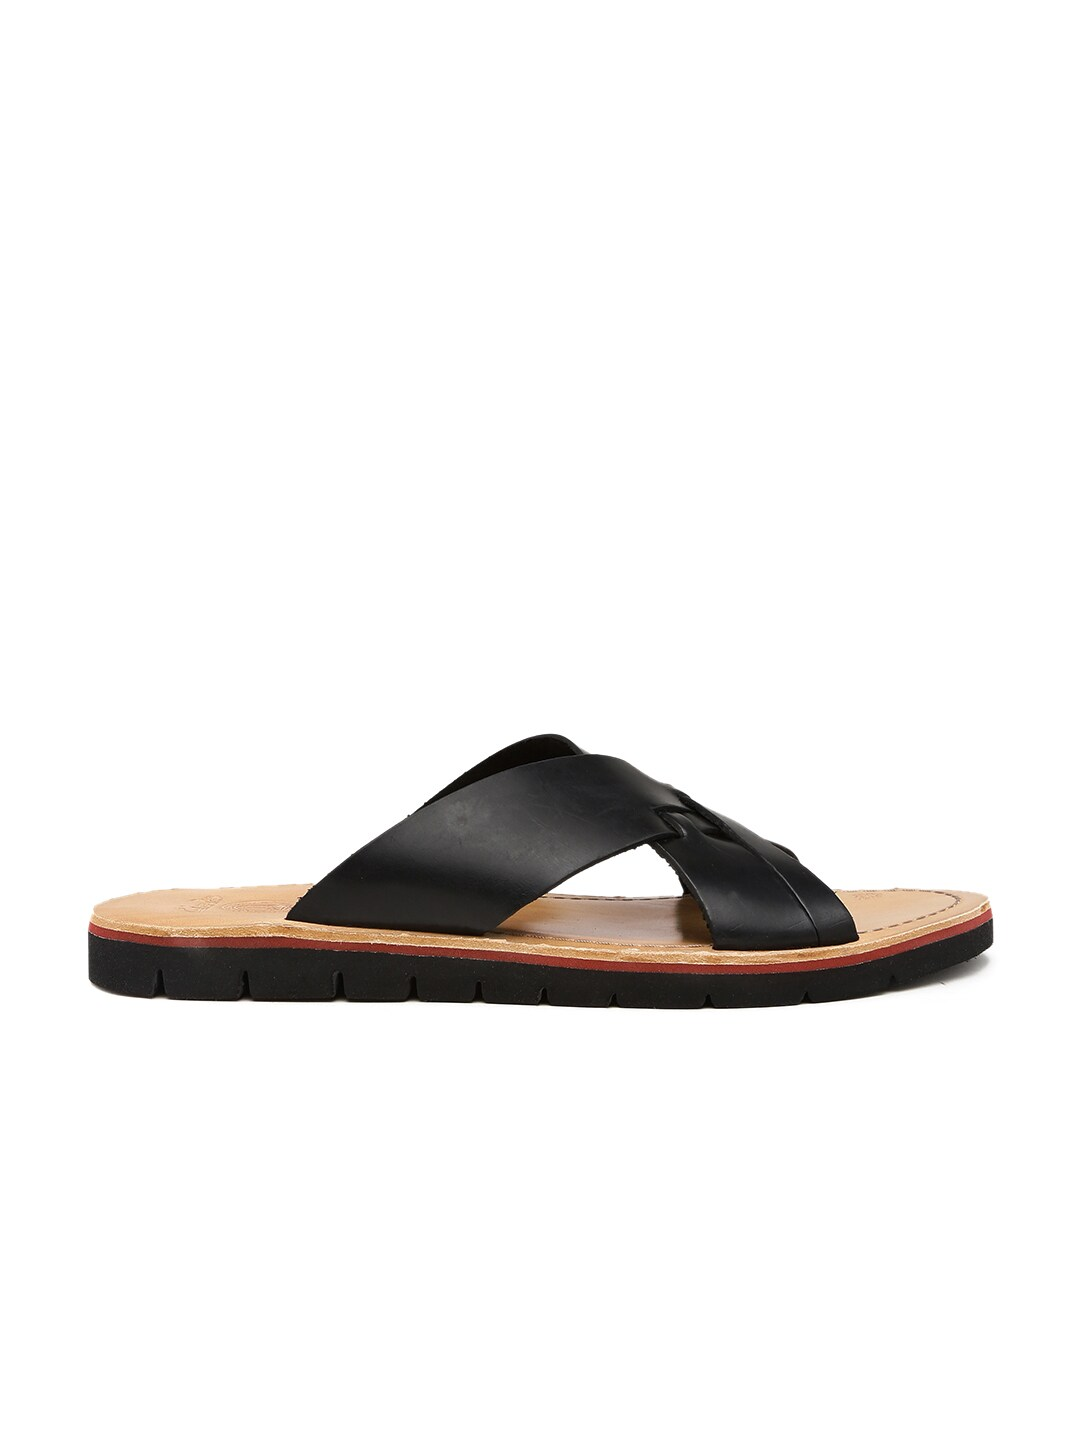 a34efa3a7 Clarks Men Sandal - Buy Clarks Men Sandal online in India